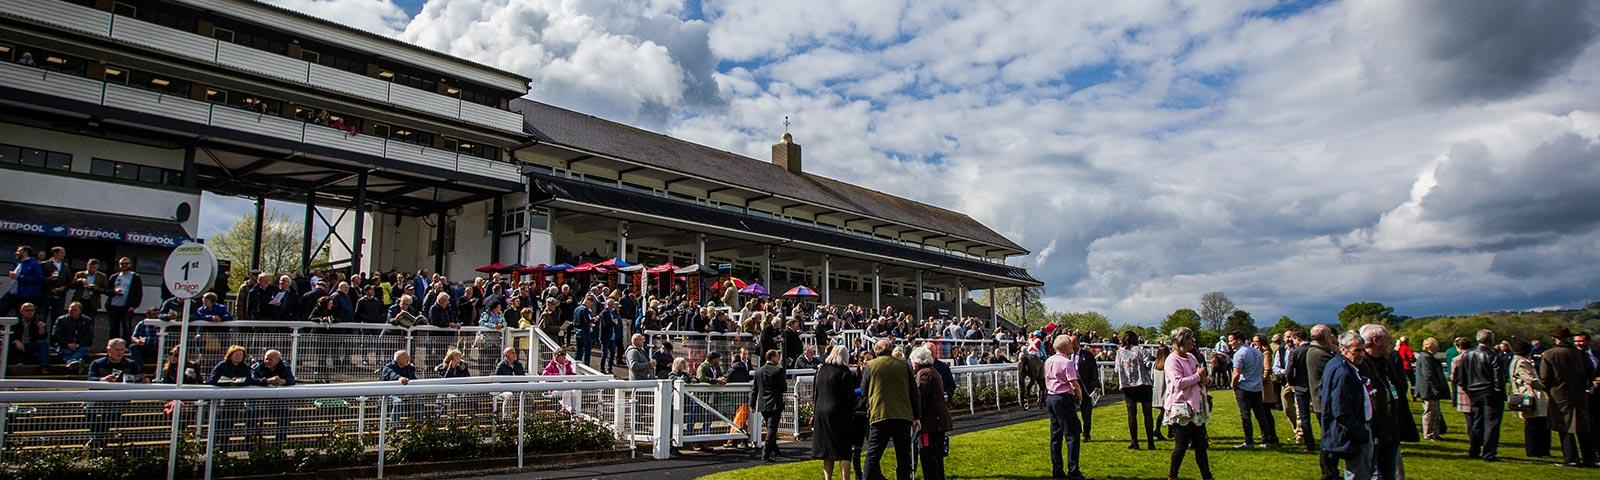 Crowds gathered around the main grandstand at Chepstow Racecourse.